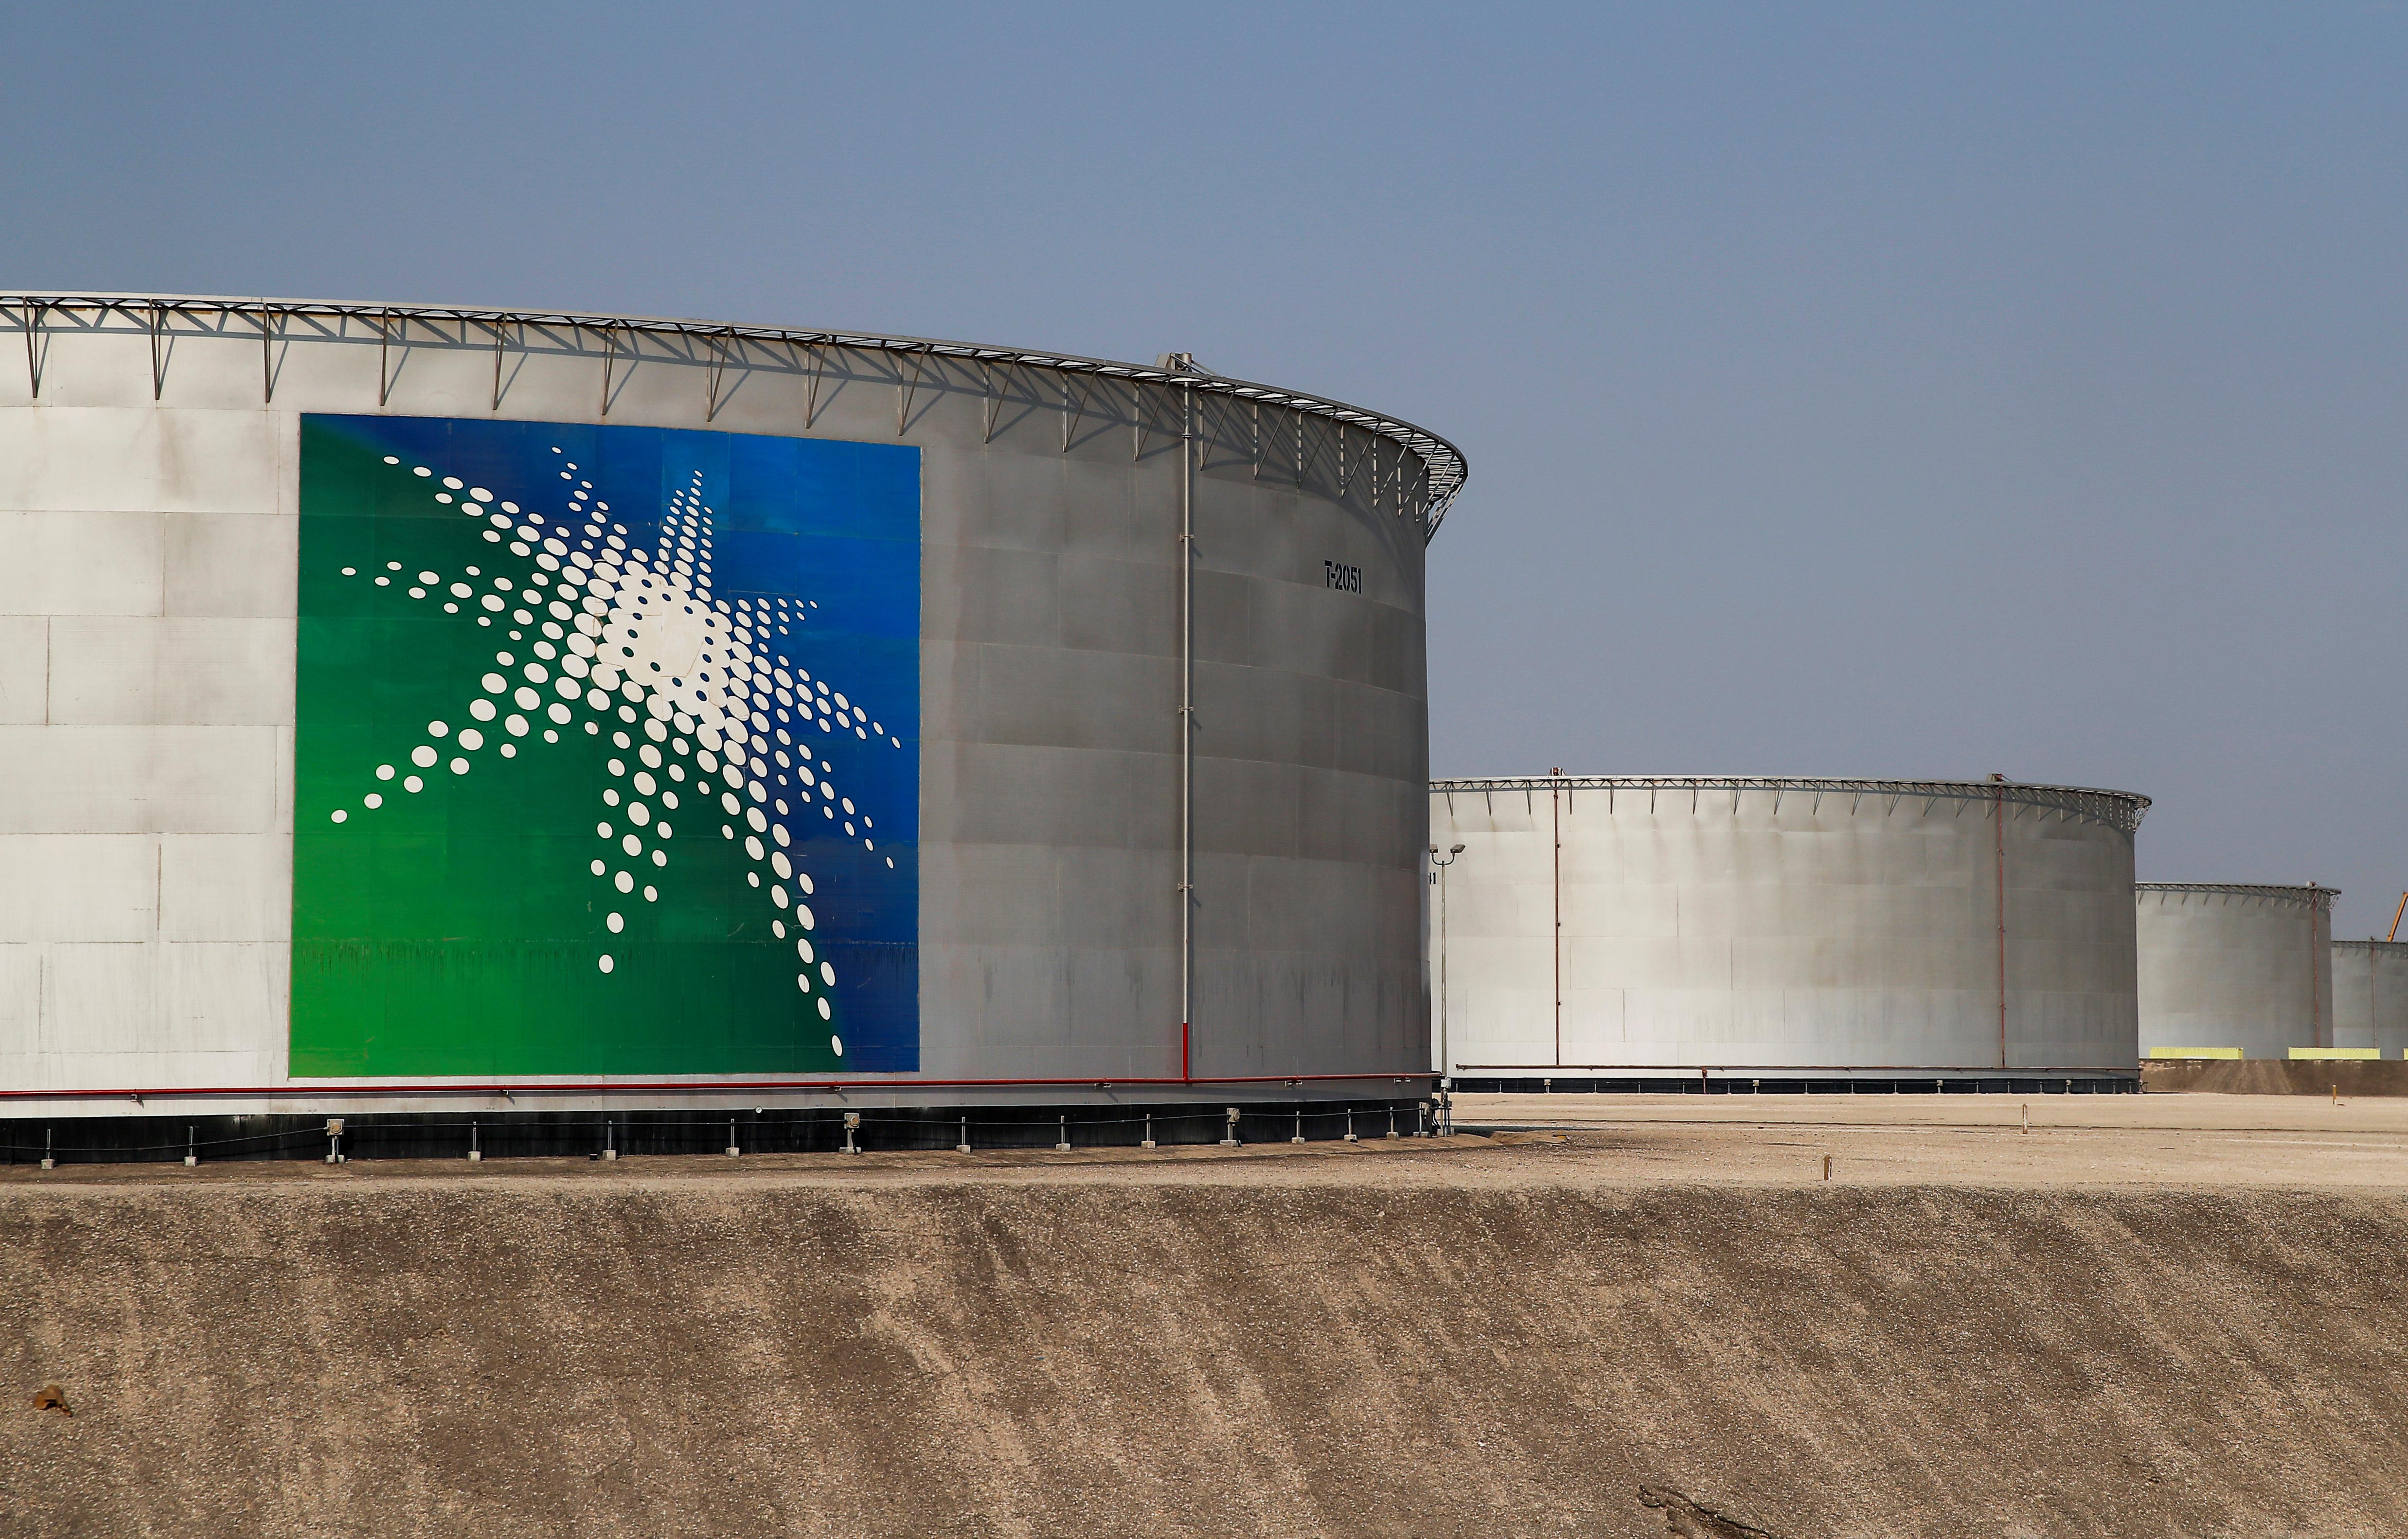 Factbox: Saudi Aramco - the oil colossus